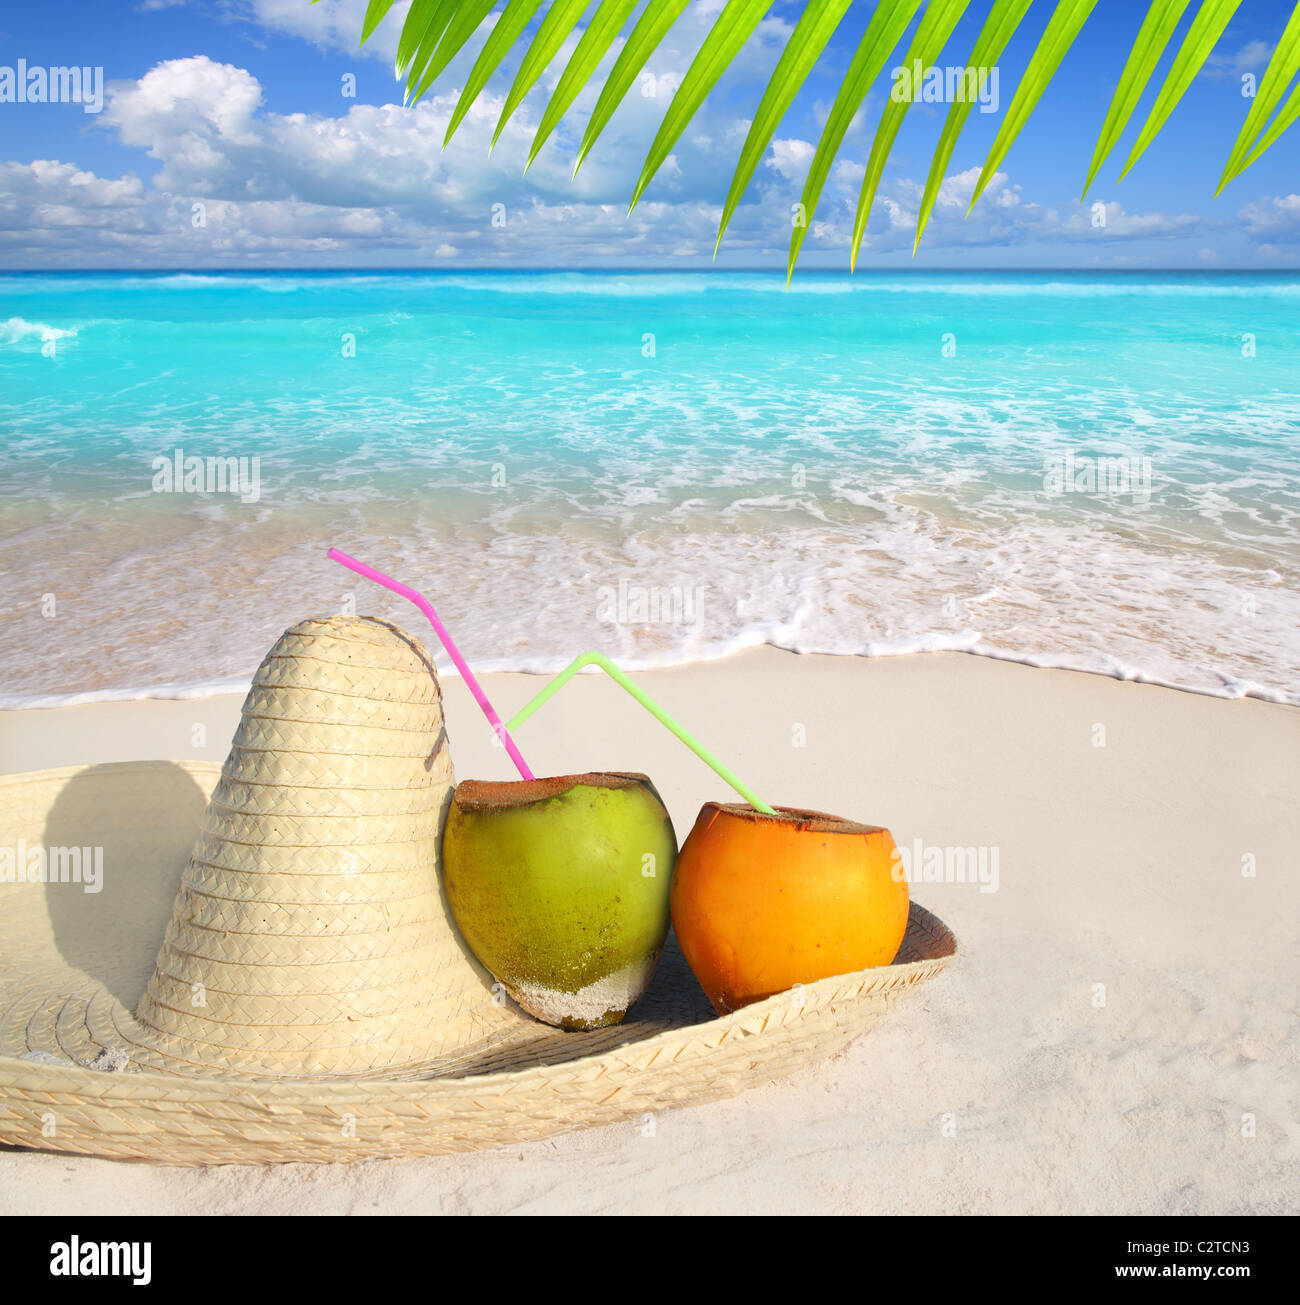 Coconuts in Caribbean beach on mexico sombrero hat tropical turquoise - Stock Image